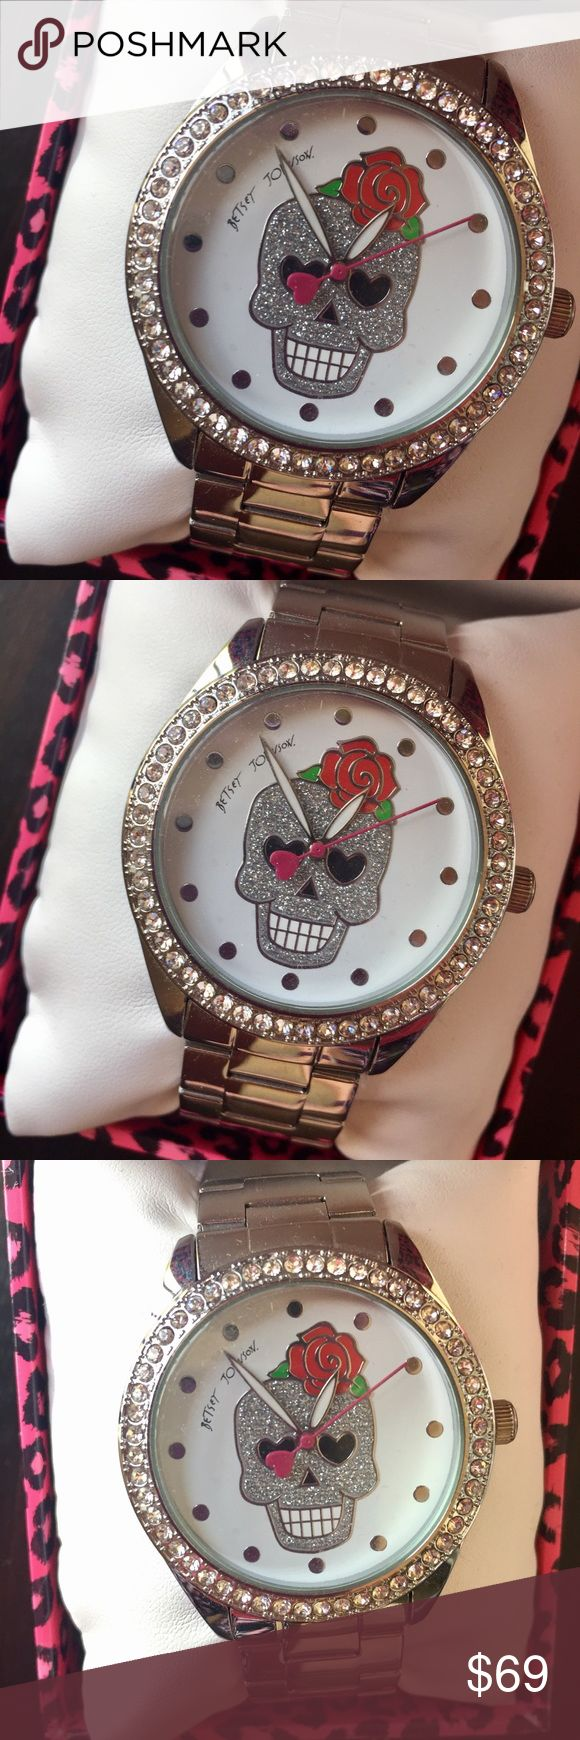 Betsey Johnson Silver Skull Sparkle Red Rose Watch NIB Betsey Johnson Silver Skull Sparkle Red Rose Watch  - comes in original leopard print Betsey box.  - Dial Color: Silver-tone with sparkling skull and red rose details - Hands: White luminous with fuchsia second hand - Markers: Silver-tone - Bracelet material: Stainless steel - Clasp Type: Deployment - Movement: Quartz Betsey Johnson Accessories Watches